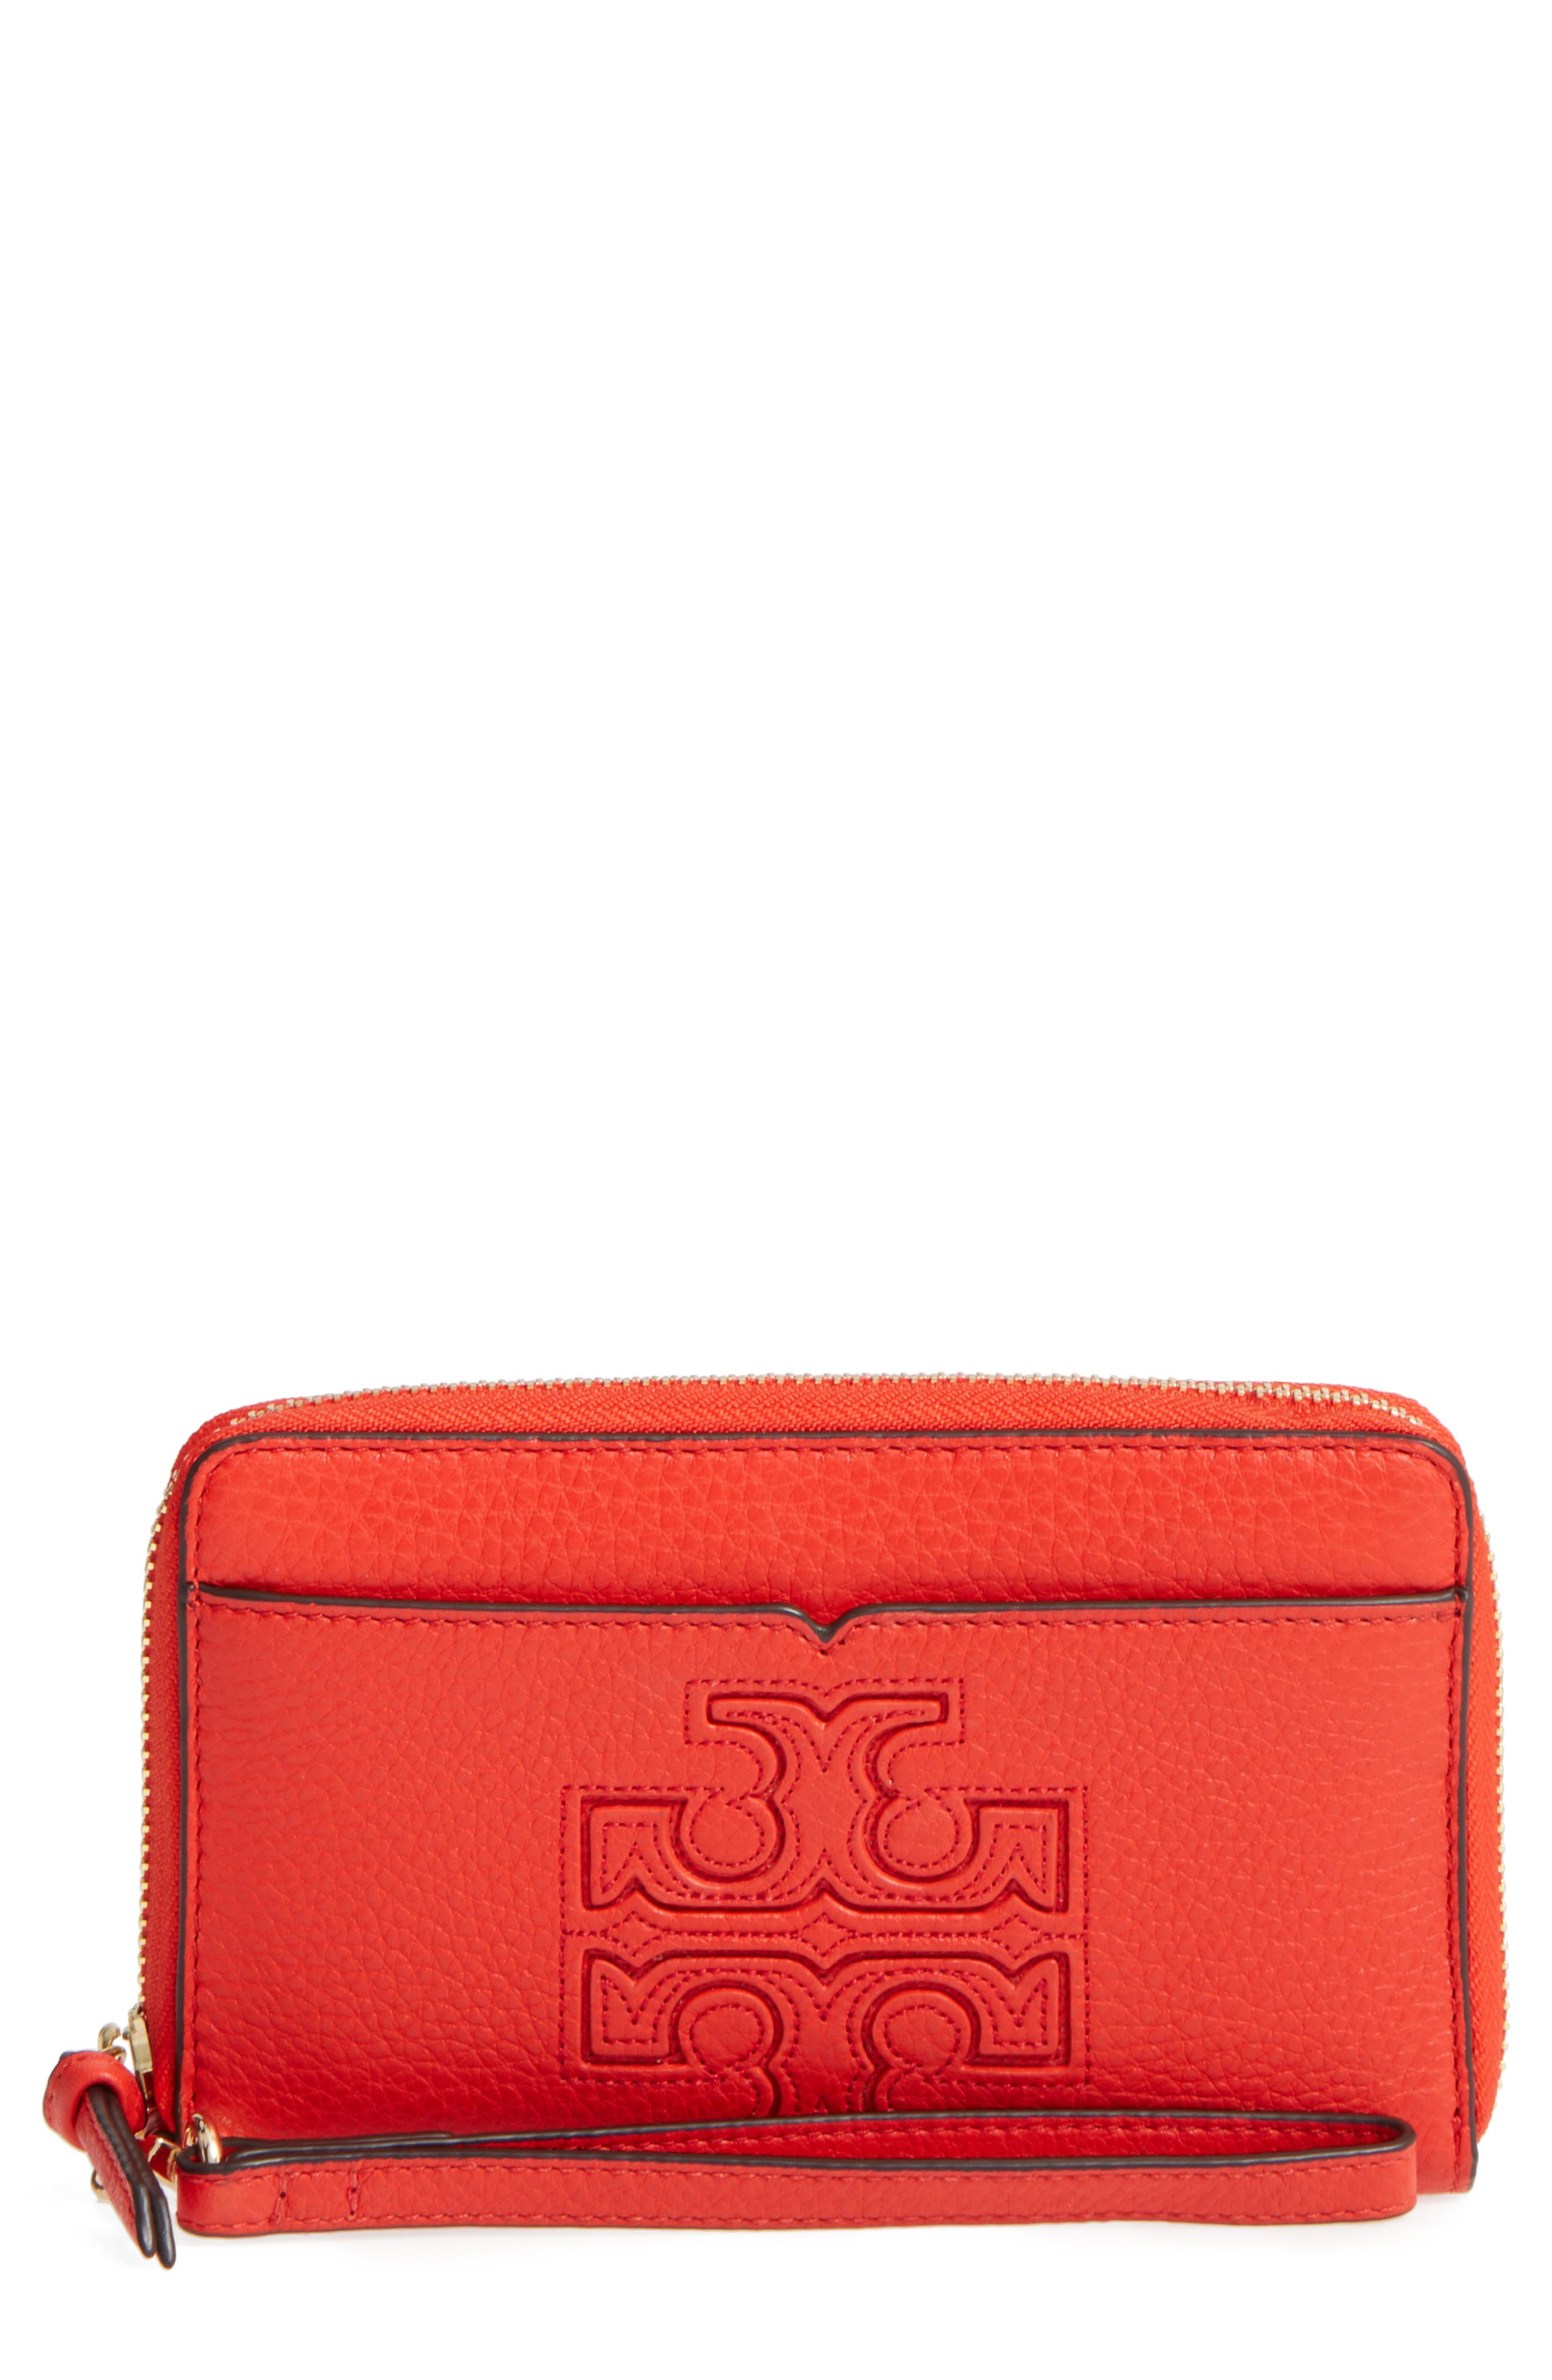 Main Image - Tory Burch Harper Leather iPhone 6/6s Wristlet